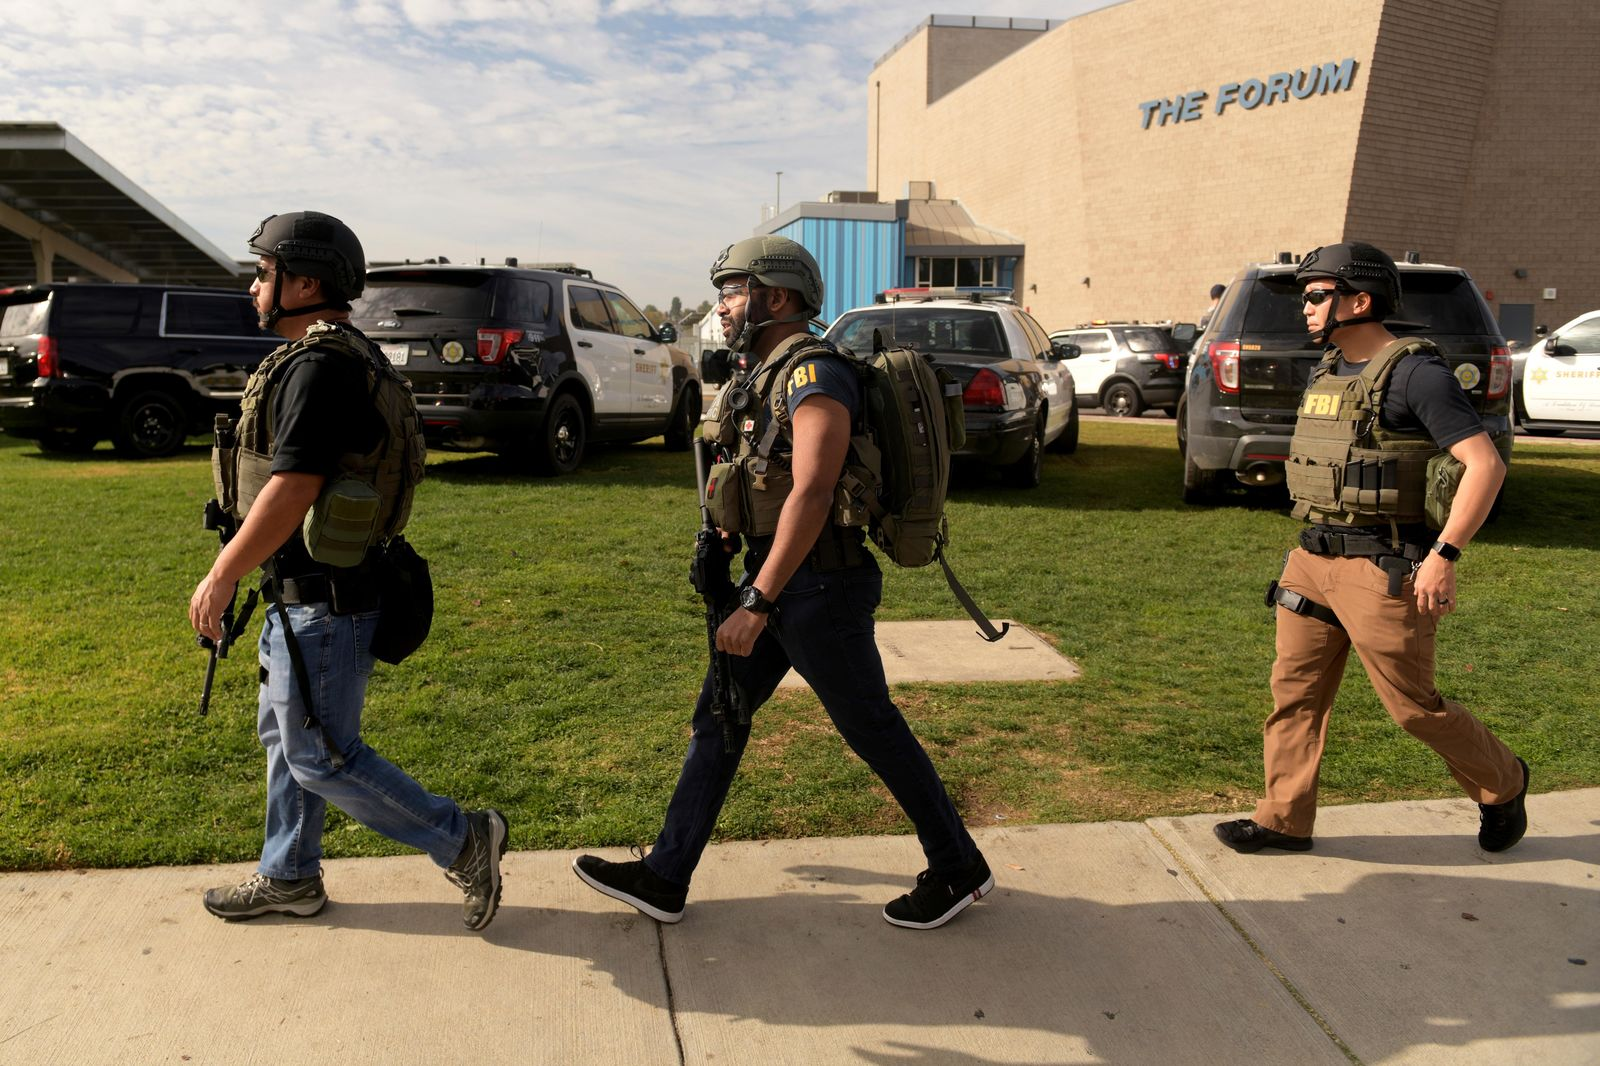 Heavily armed FBI officials survey the scene after a gunman opened fire at Saugus High School on Thursday, Nov. 14, 2019, in Santa Clarita, Calif. (AP Photo/Christian Monterrosa)